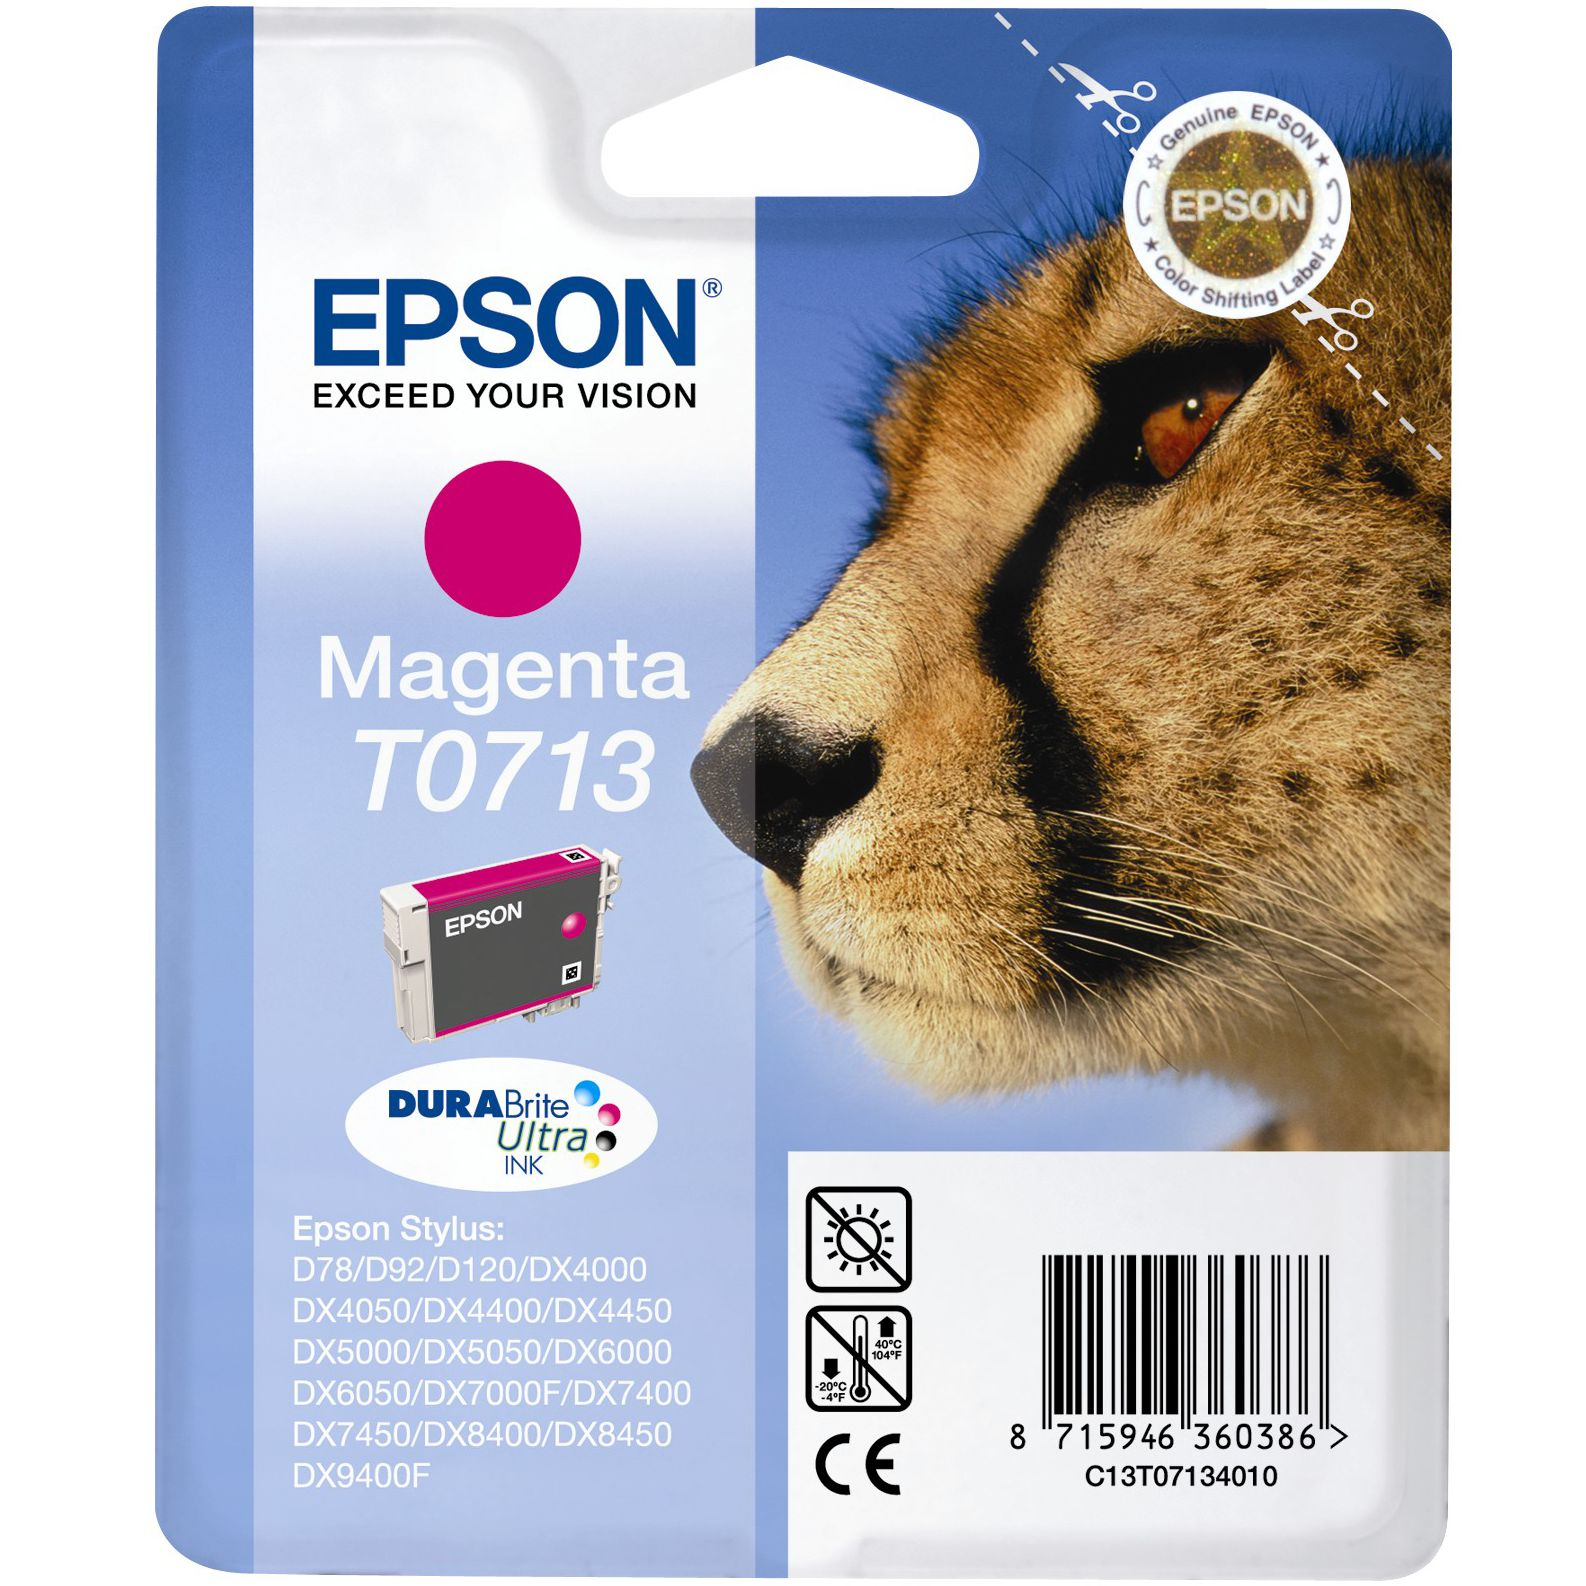 T0713 Inkjet Printer Cartridge, Magenta